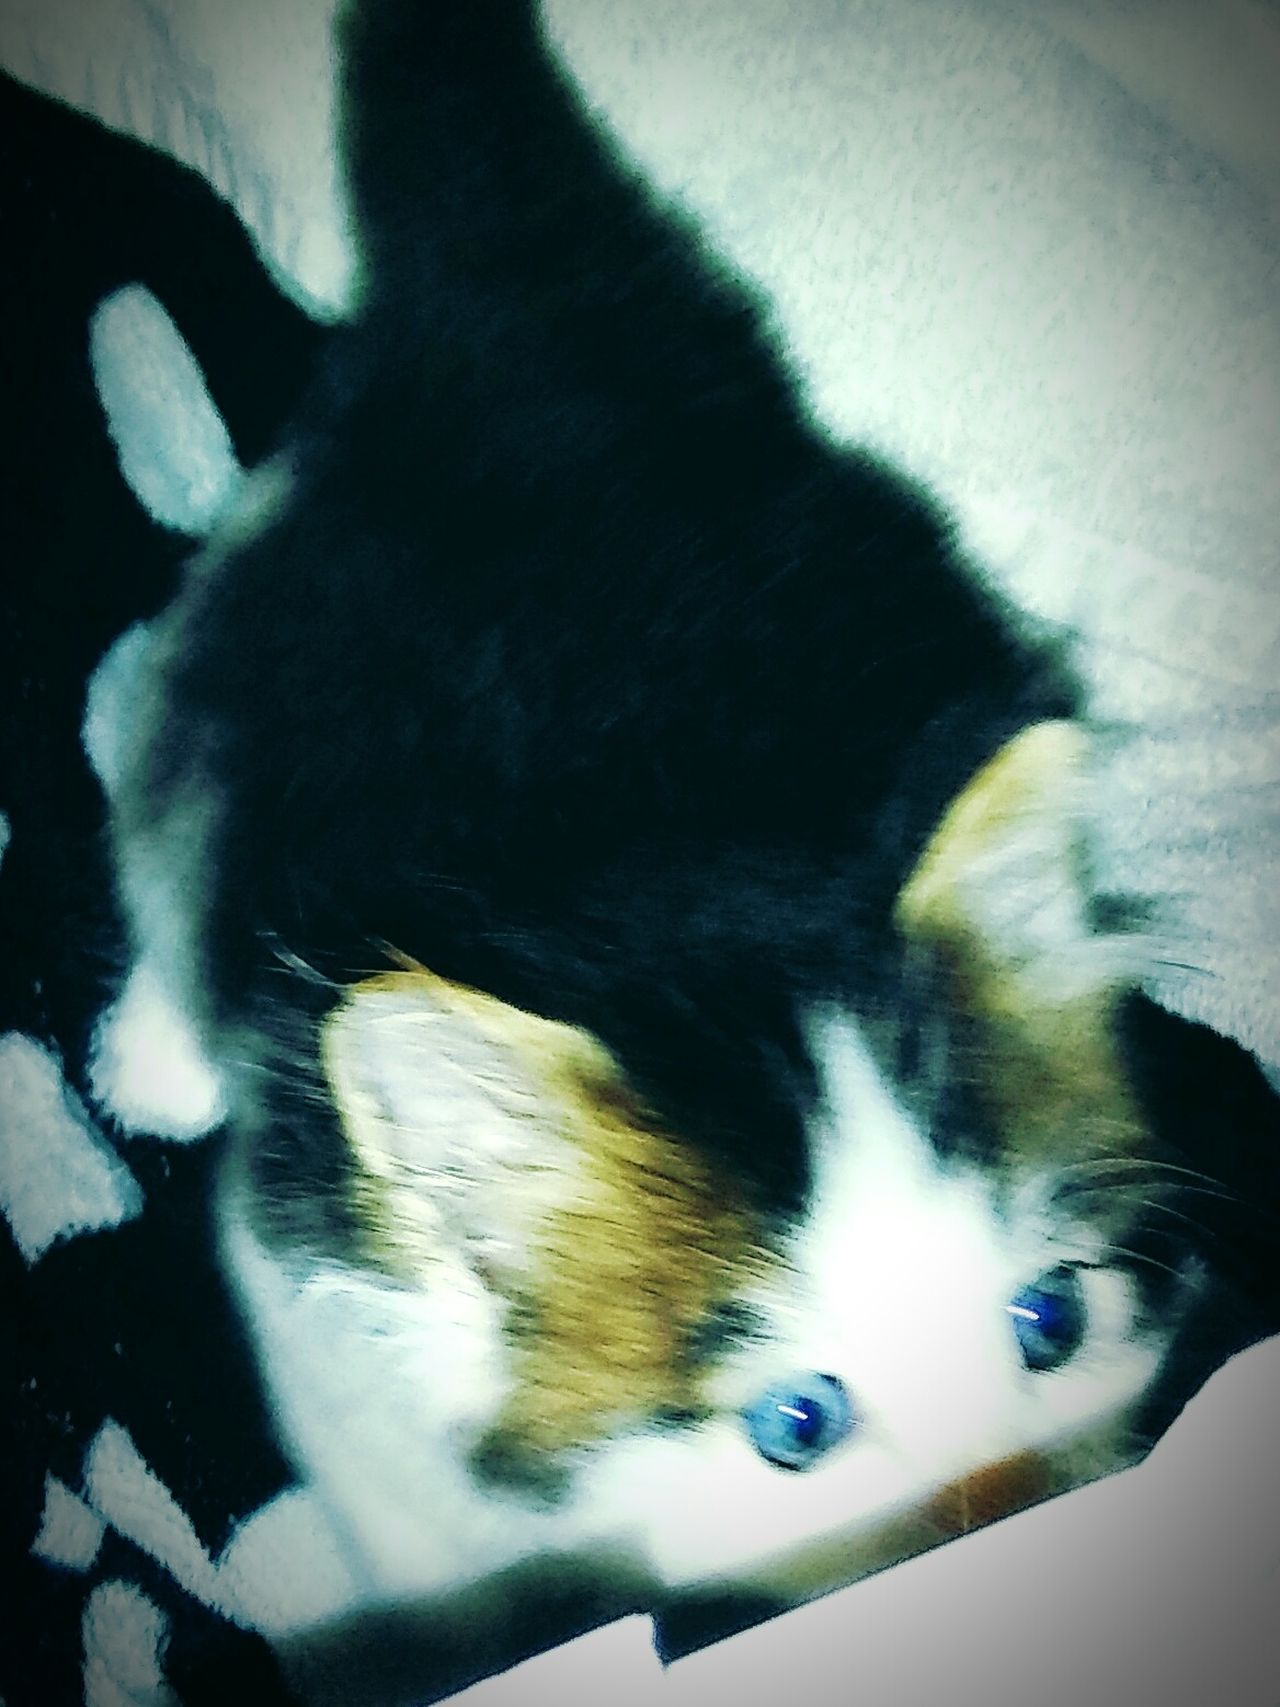 Peekaboo!!😝😝💜💙💚 Precious Little Moments Taking Photos Hello World Cheese! Hi! Animals Pawsome Loveallanimals Tabbysofinstagram Beautiful Kitties Paws And Purrs Beautiful Kittens Bayareaphotography Catsofeyeem Catlovers Catstarcat ❤️🔥❤️ Cat Eyes TabbyCat Blue Eyed Kitten Beautiful Eyes